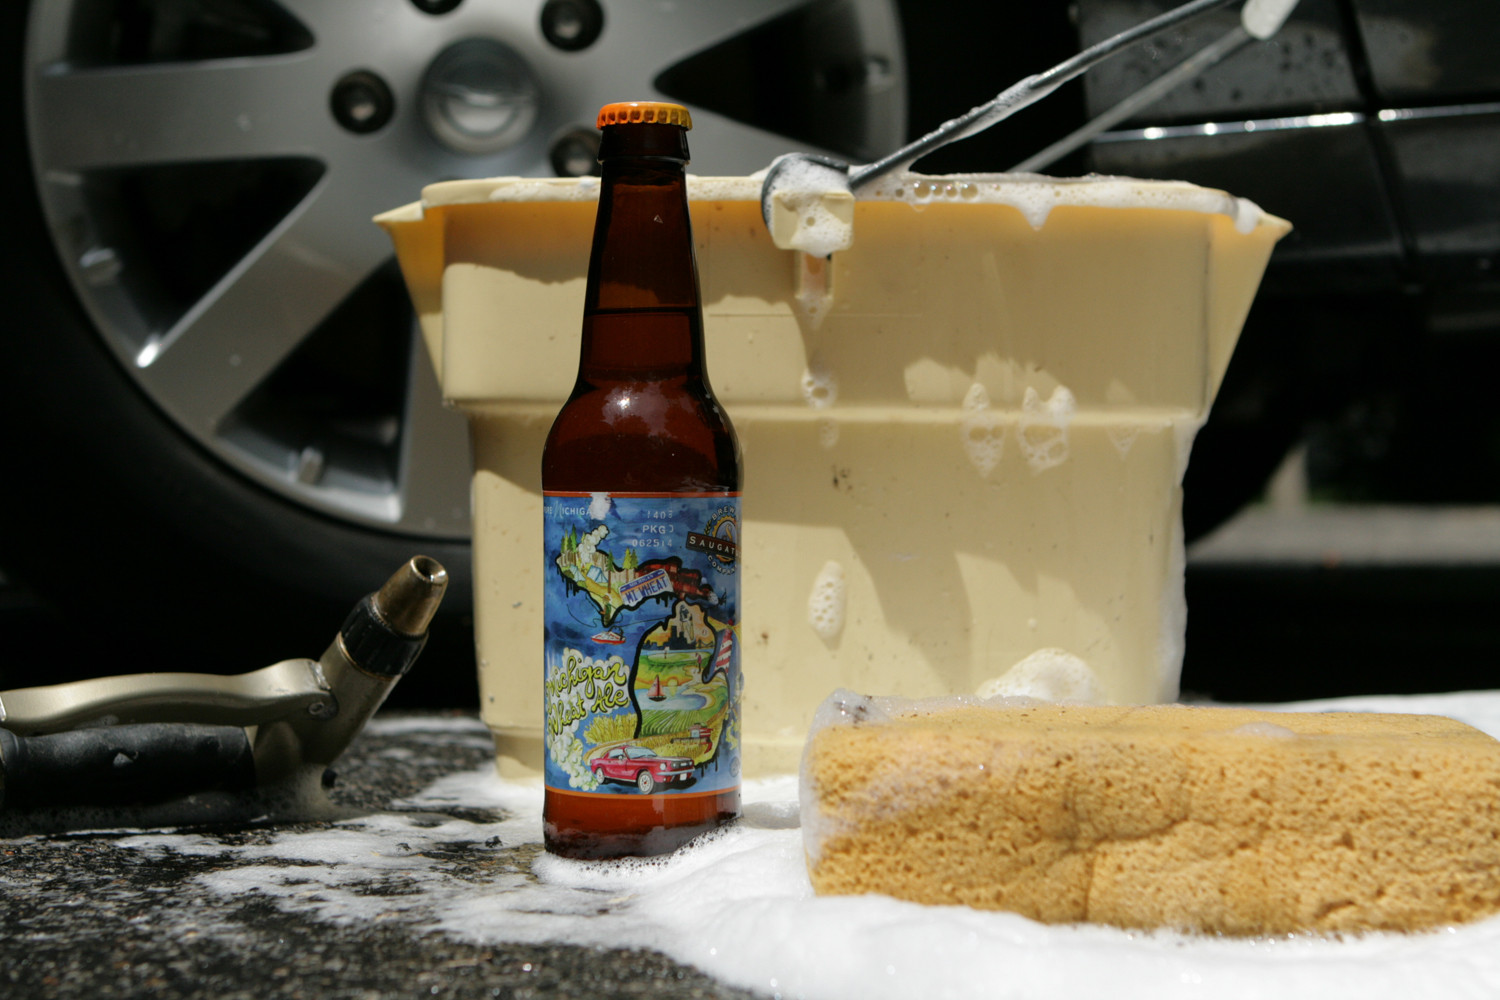 The summer seasonal beer from Saugatuck is Michigan Wheat Ale.